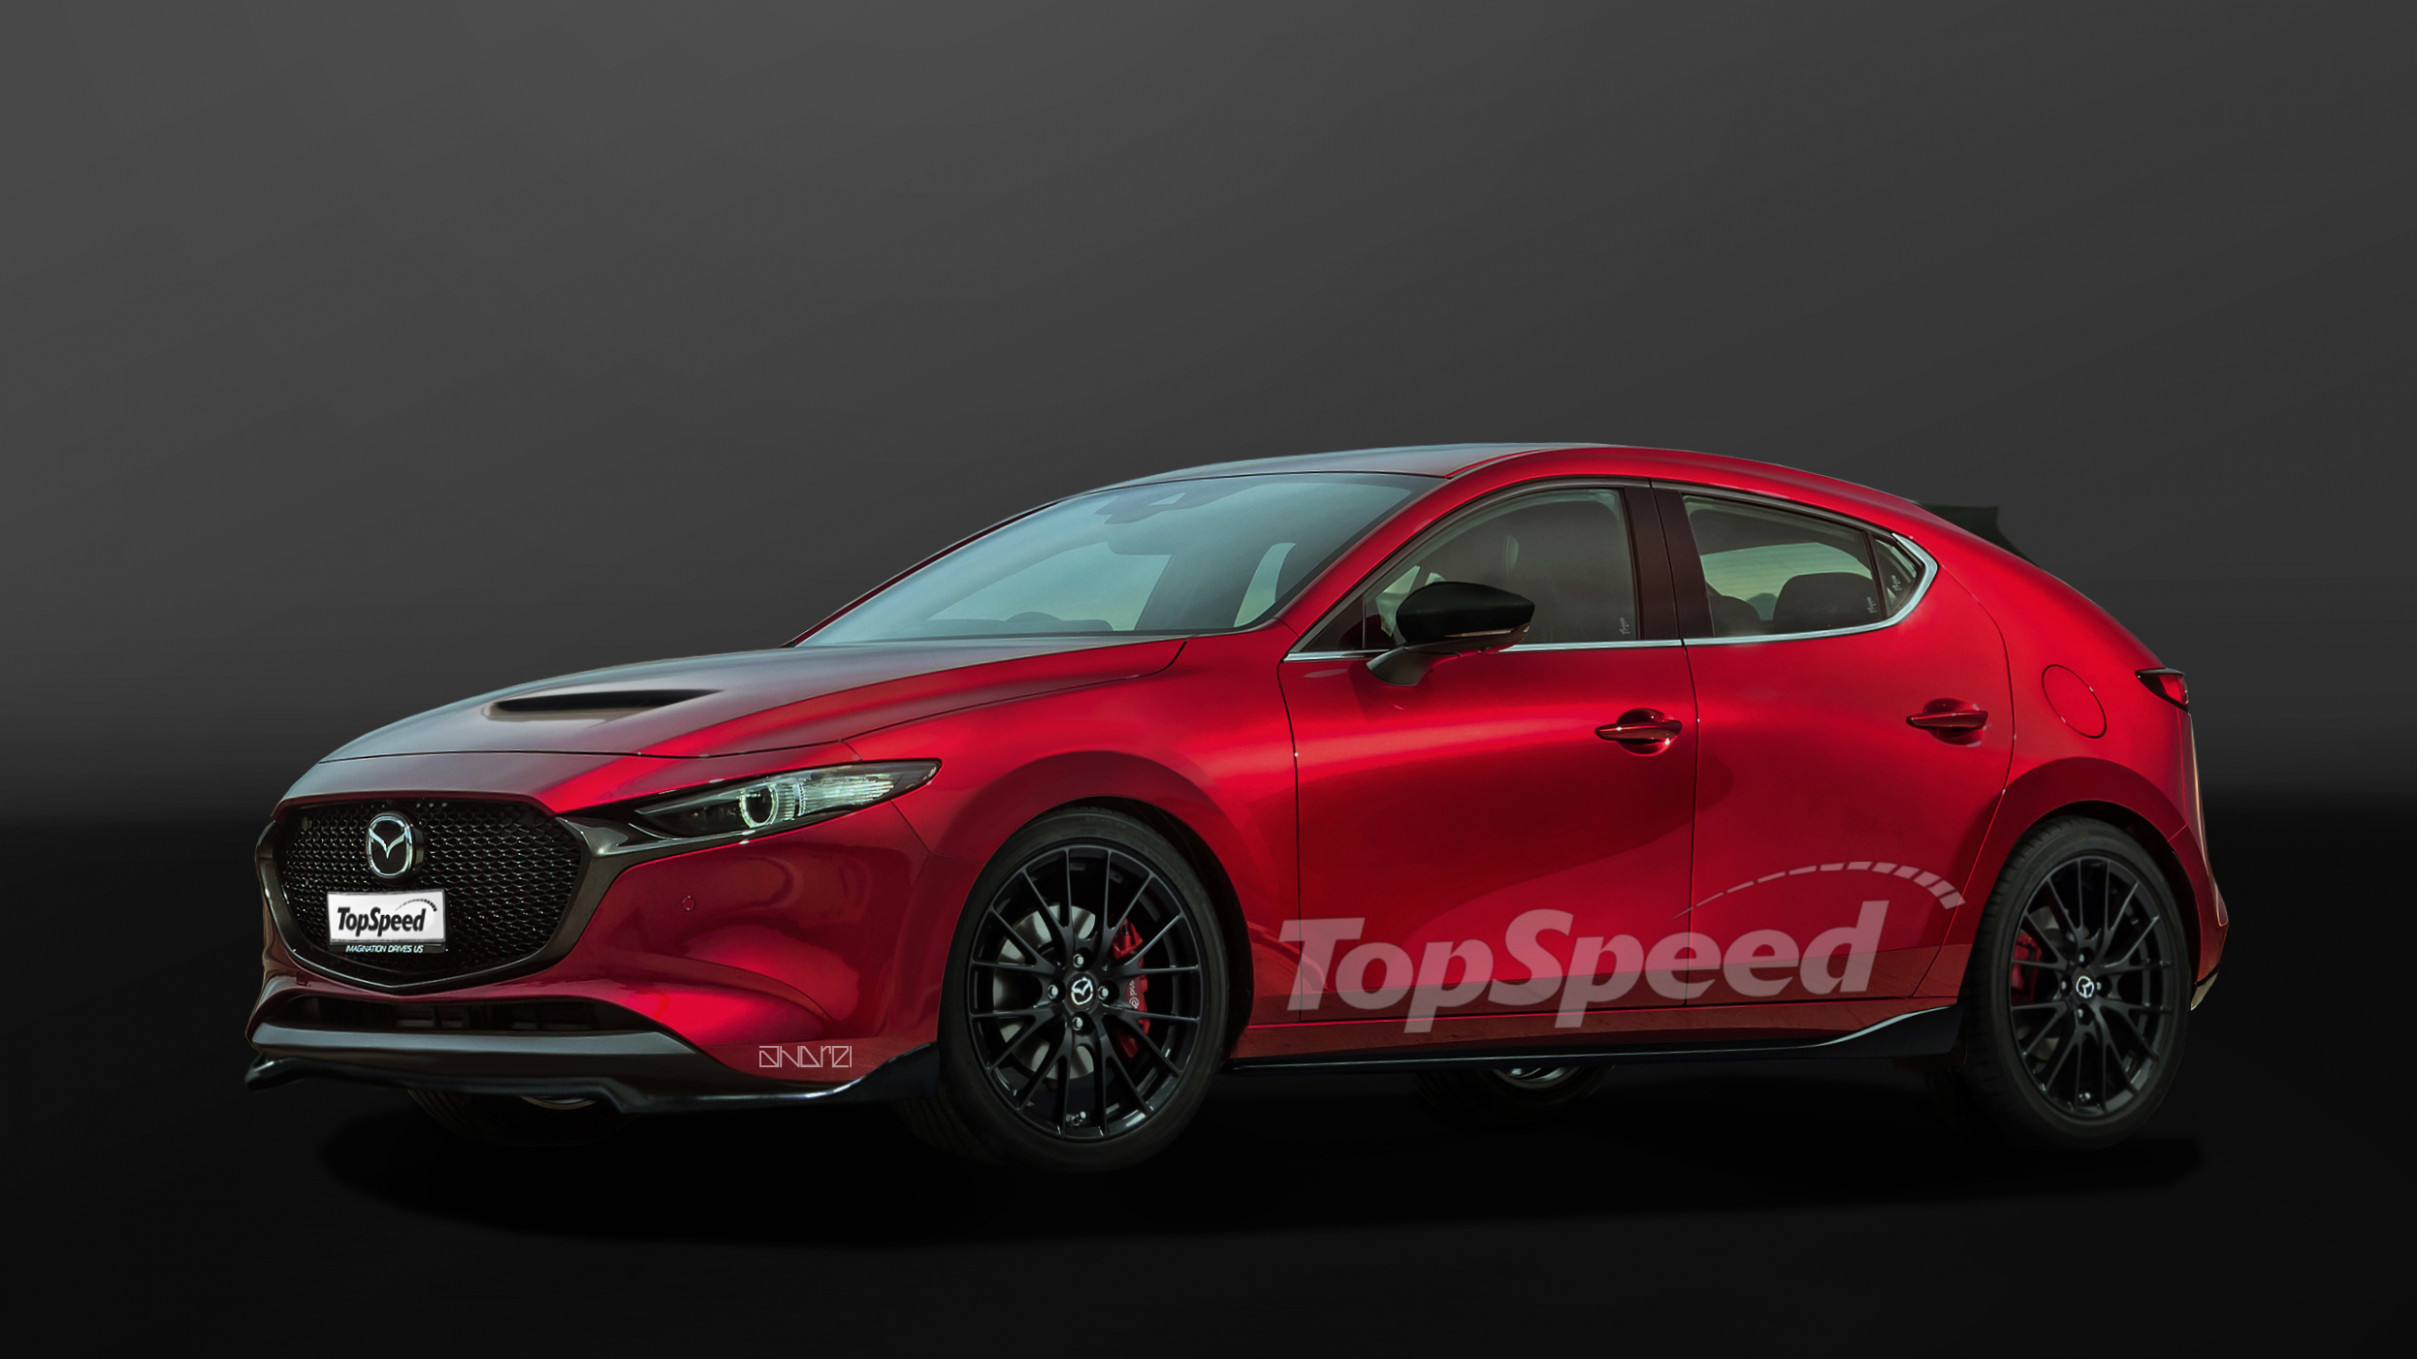 Redesign and Concept 2022 Mazdaspeed 3